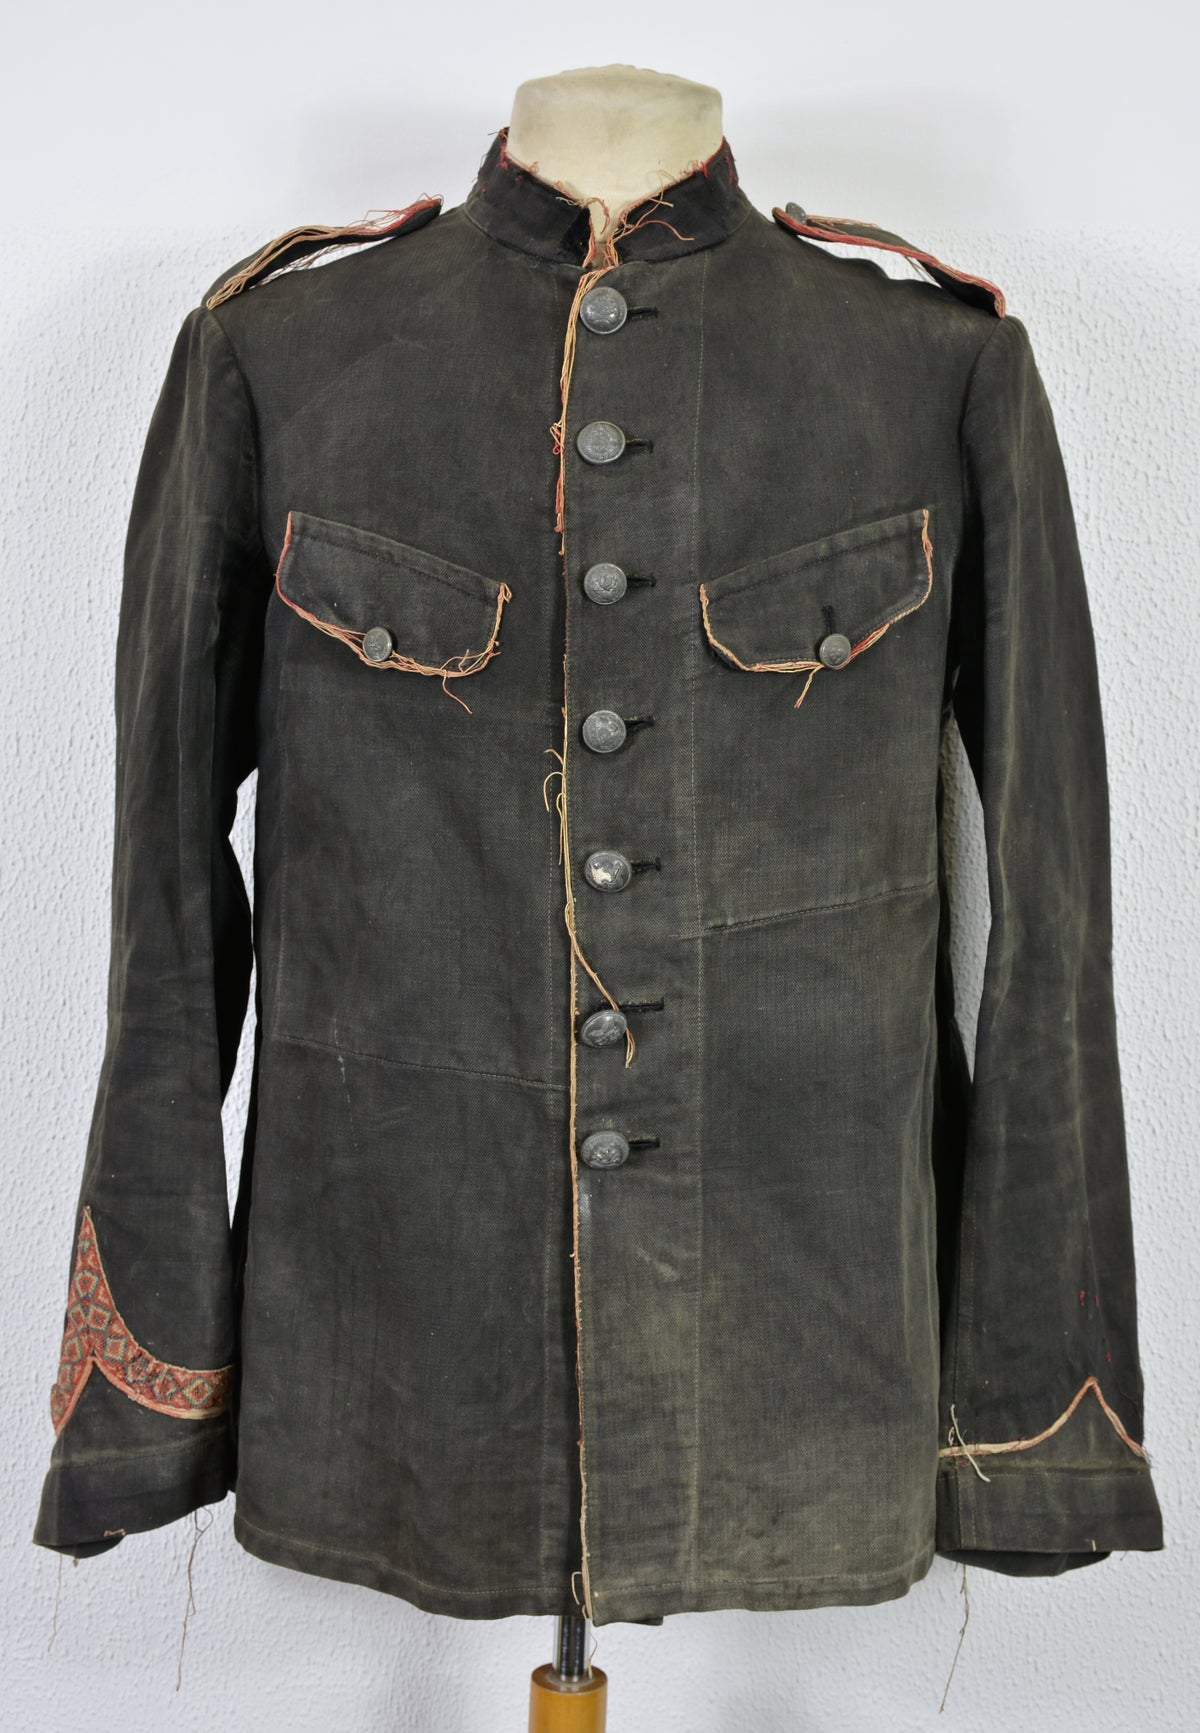 Image of 1880's FRENCH HBT BLACK LINEN FIREMAN JACKET 2 フレンチファイアーマンジャケット